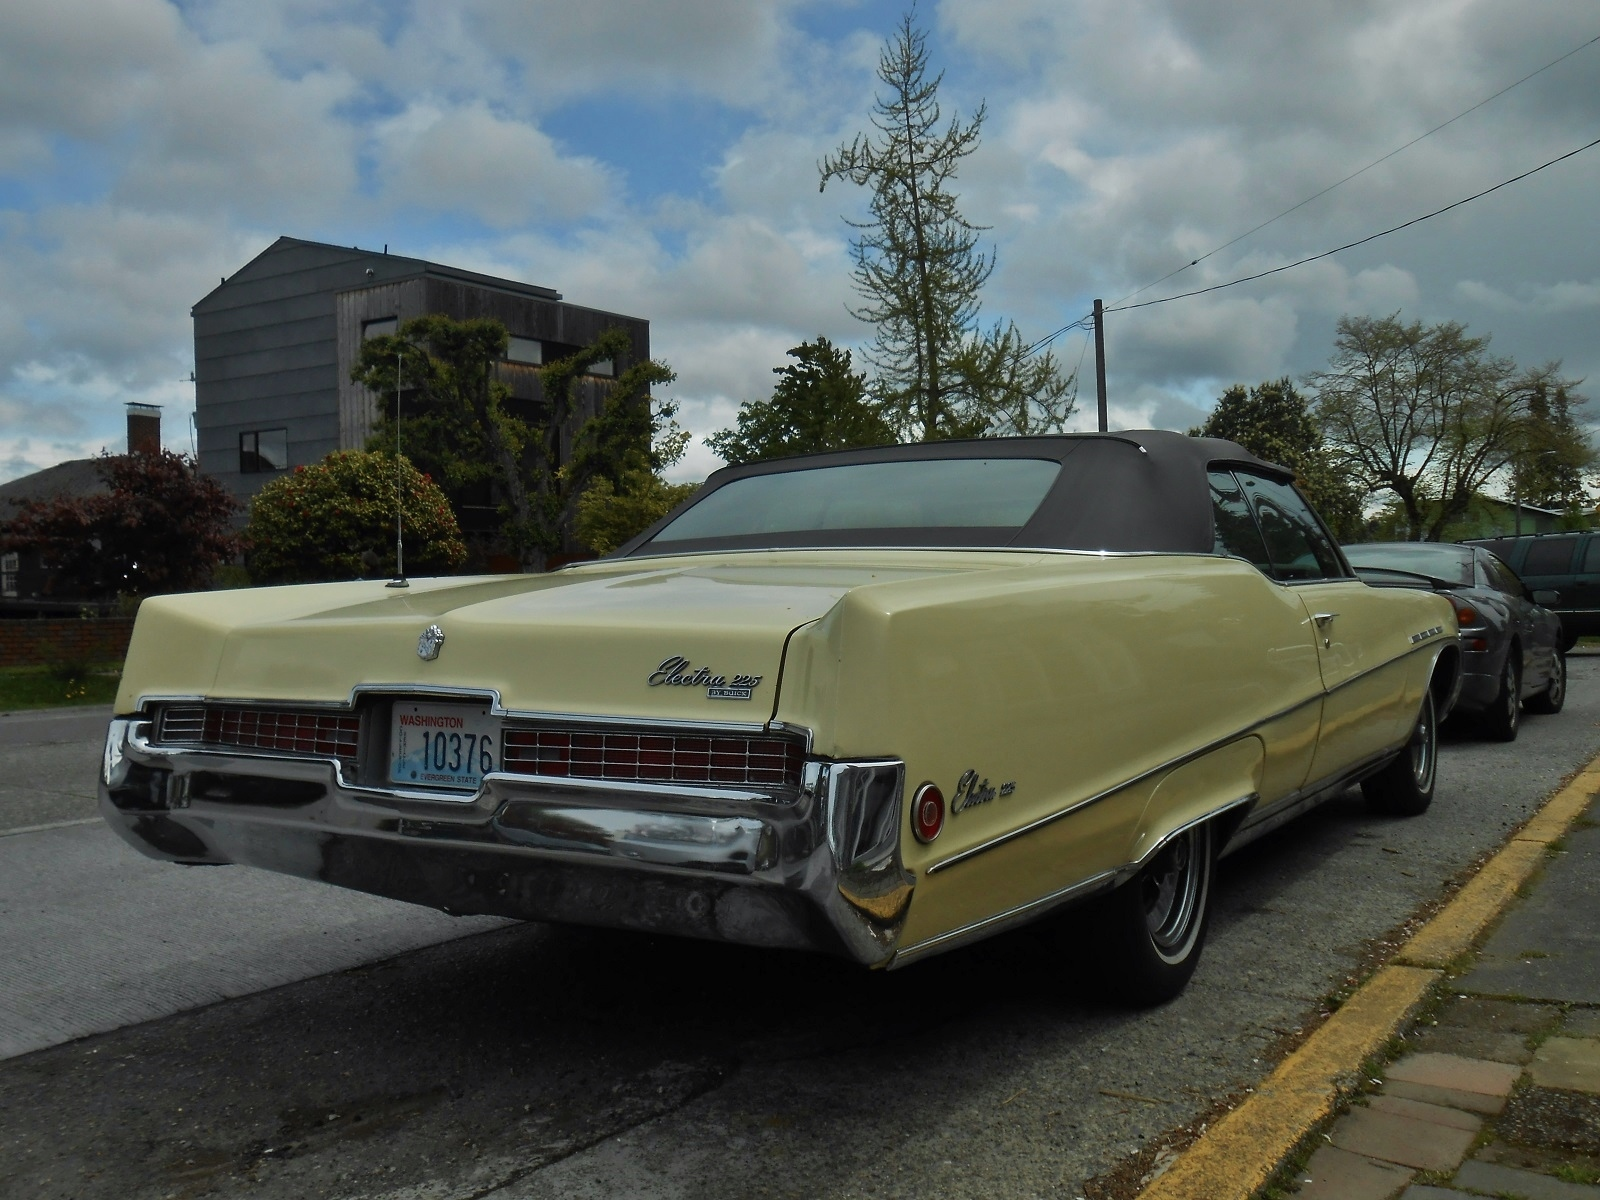 Seattles Parked Cars 1969 Buick Electra 225 Convertible 1961 Tuesday July 22 2014